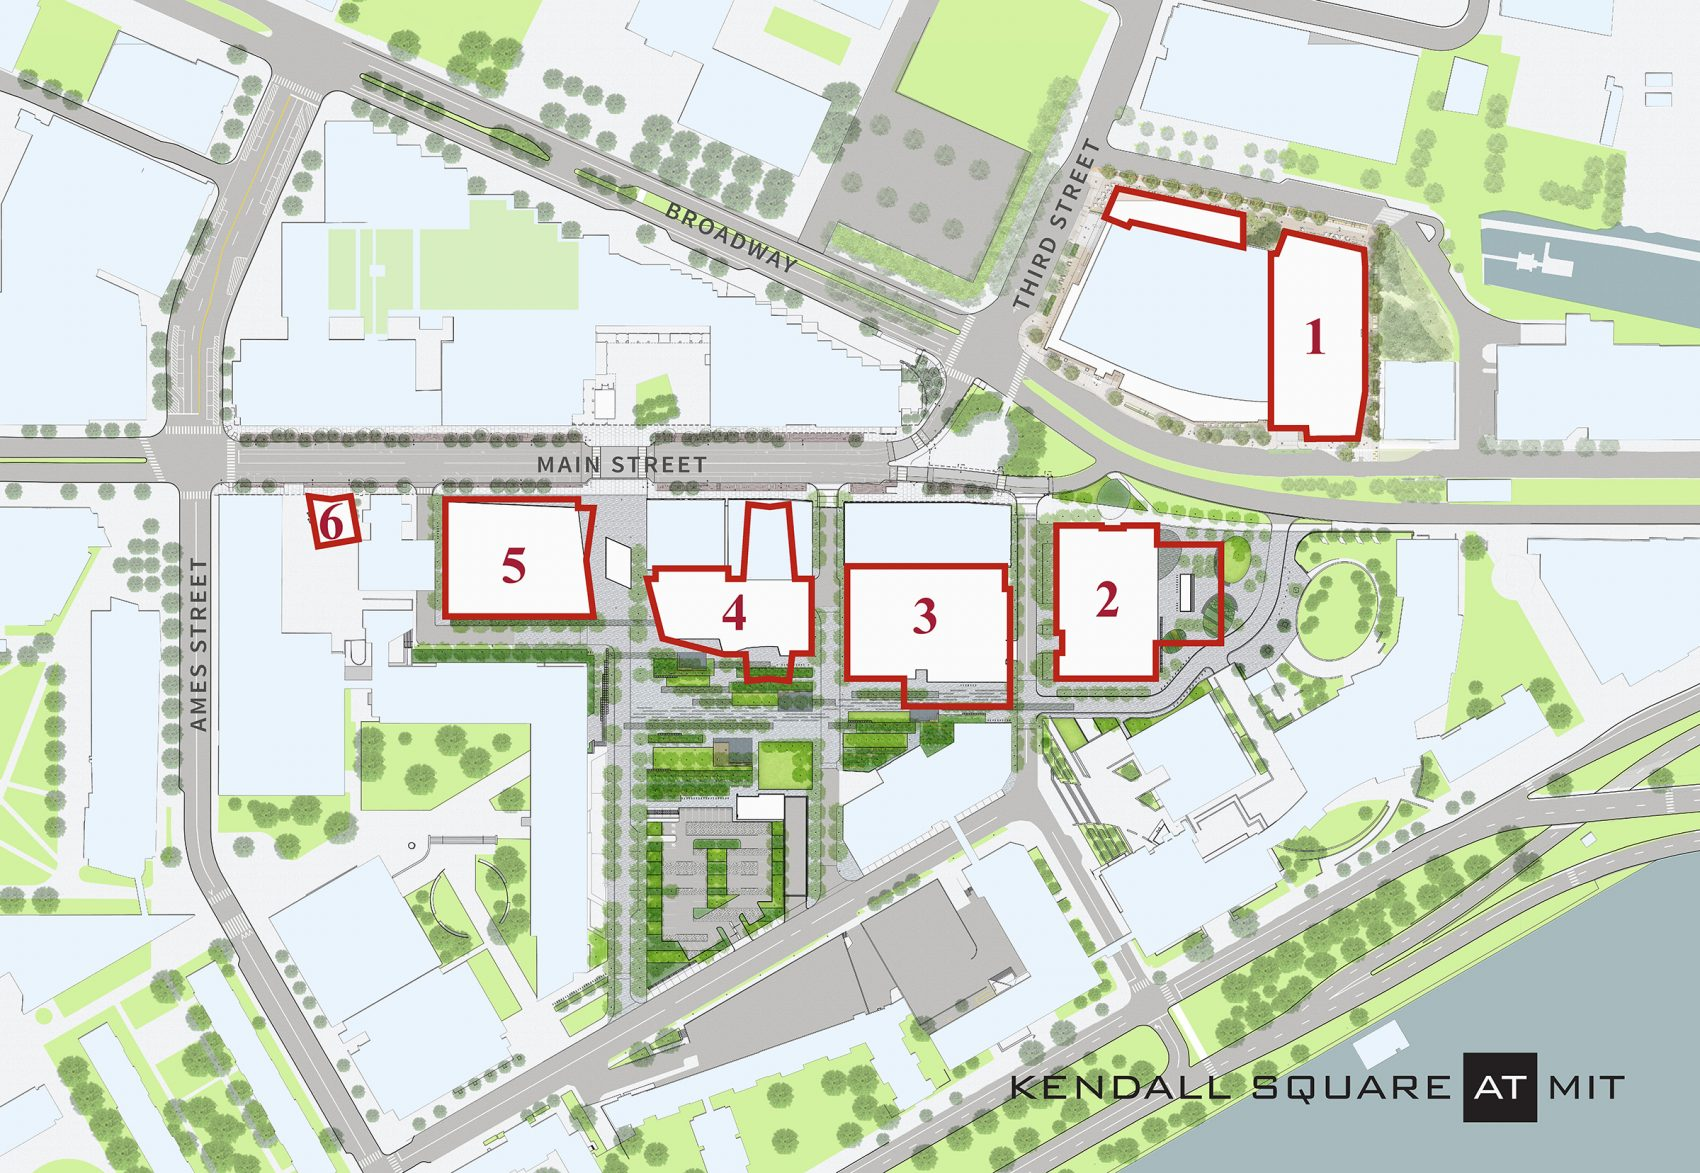 A map of MIT's Kendall Square Initiative, a major development project that will include six sites slated for housing, retail, office space, research and development, and outdoor space. The project will cost $2 billion, according to MIT officials. (Courtesy: MITIMCO)